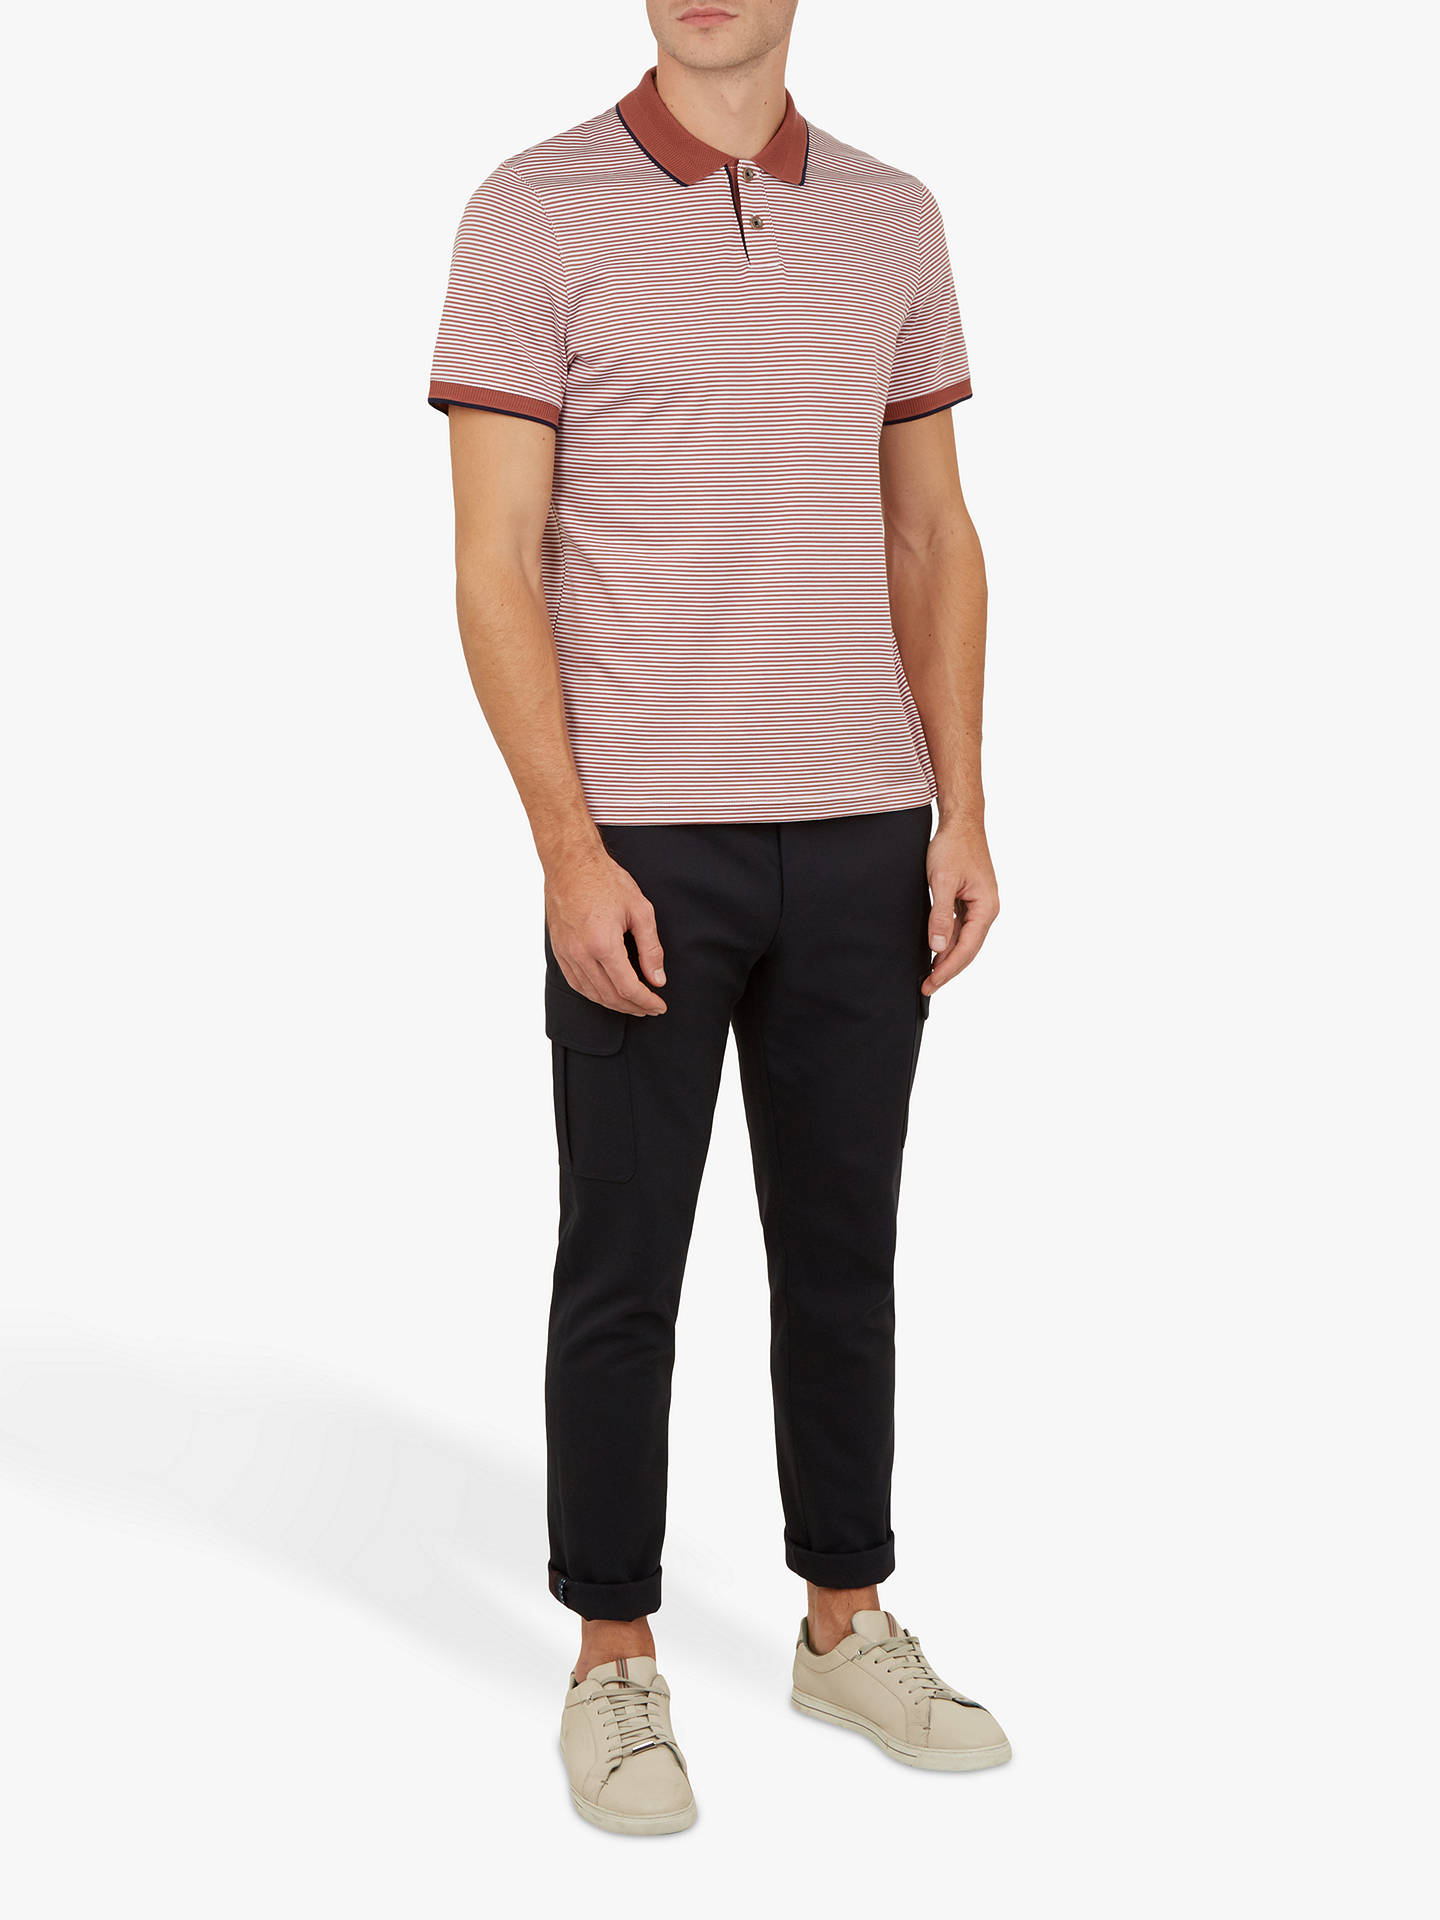 BuyTed Baker Gingen Flat Knit Polo Shirt, Mid Orange, L Online at johnlewis.com